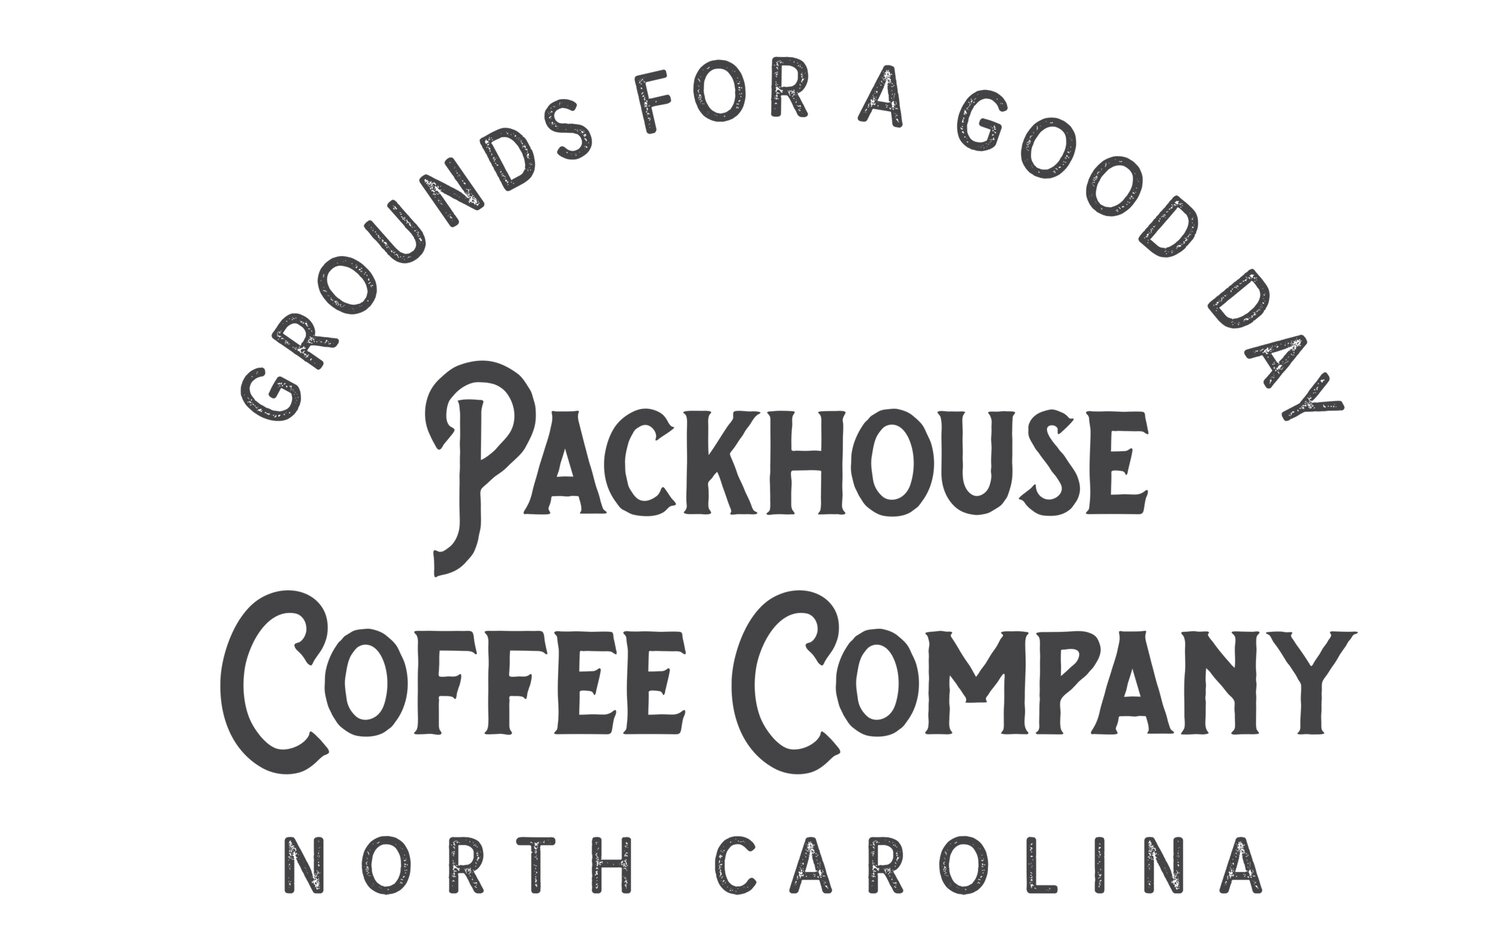 Packhouse Coffee Company